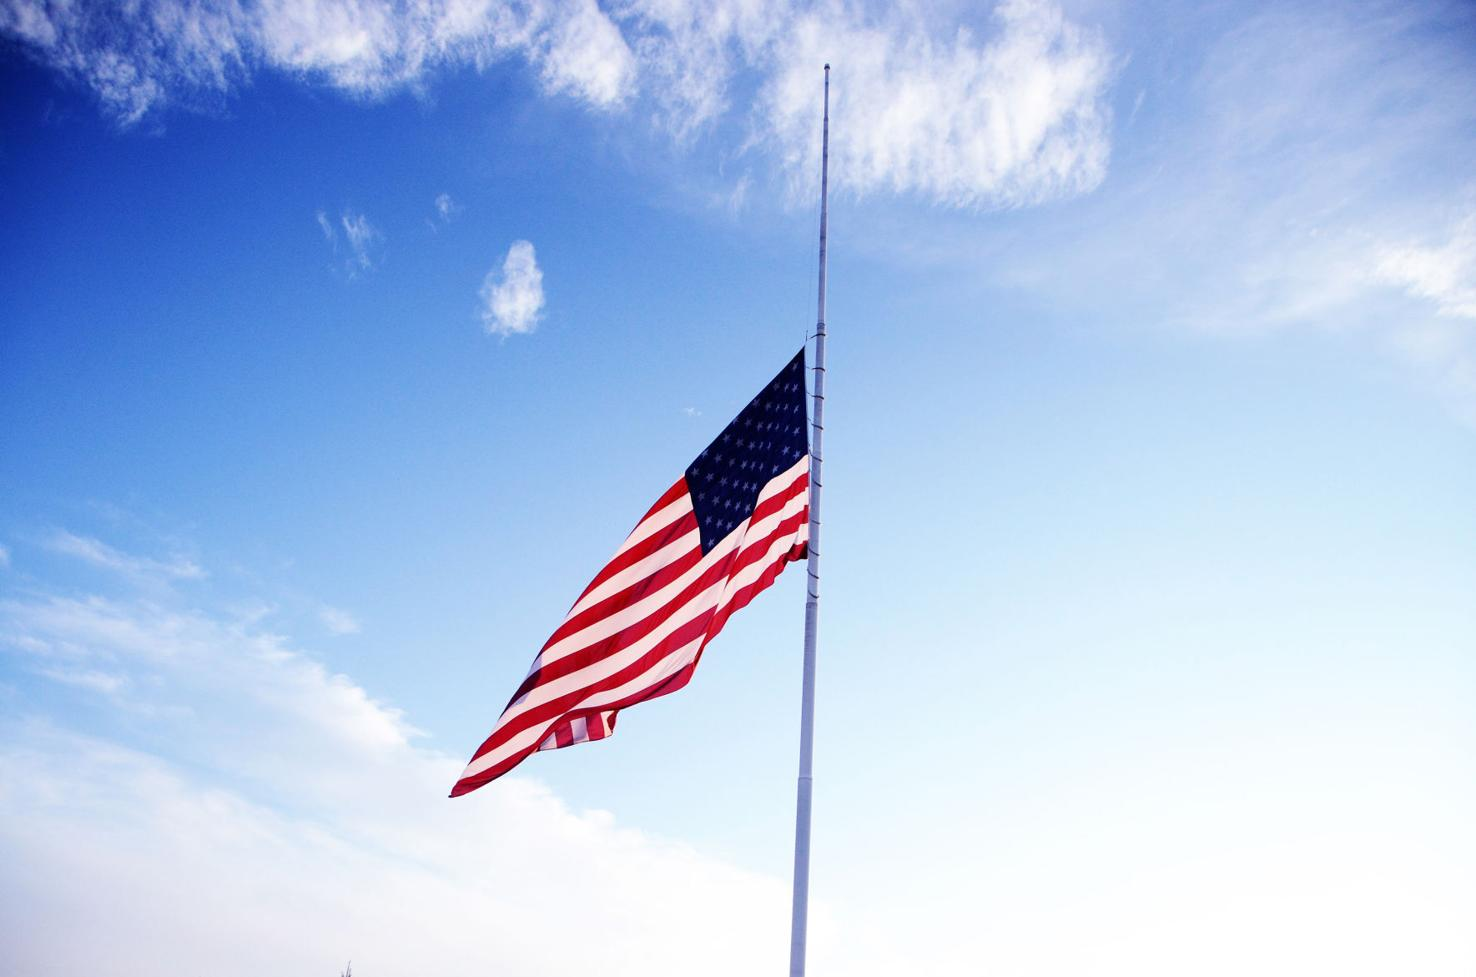 President Obama orders flags flown at half-staff to honor